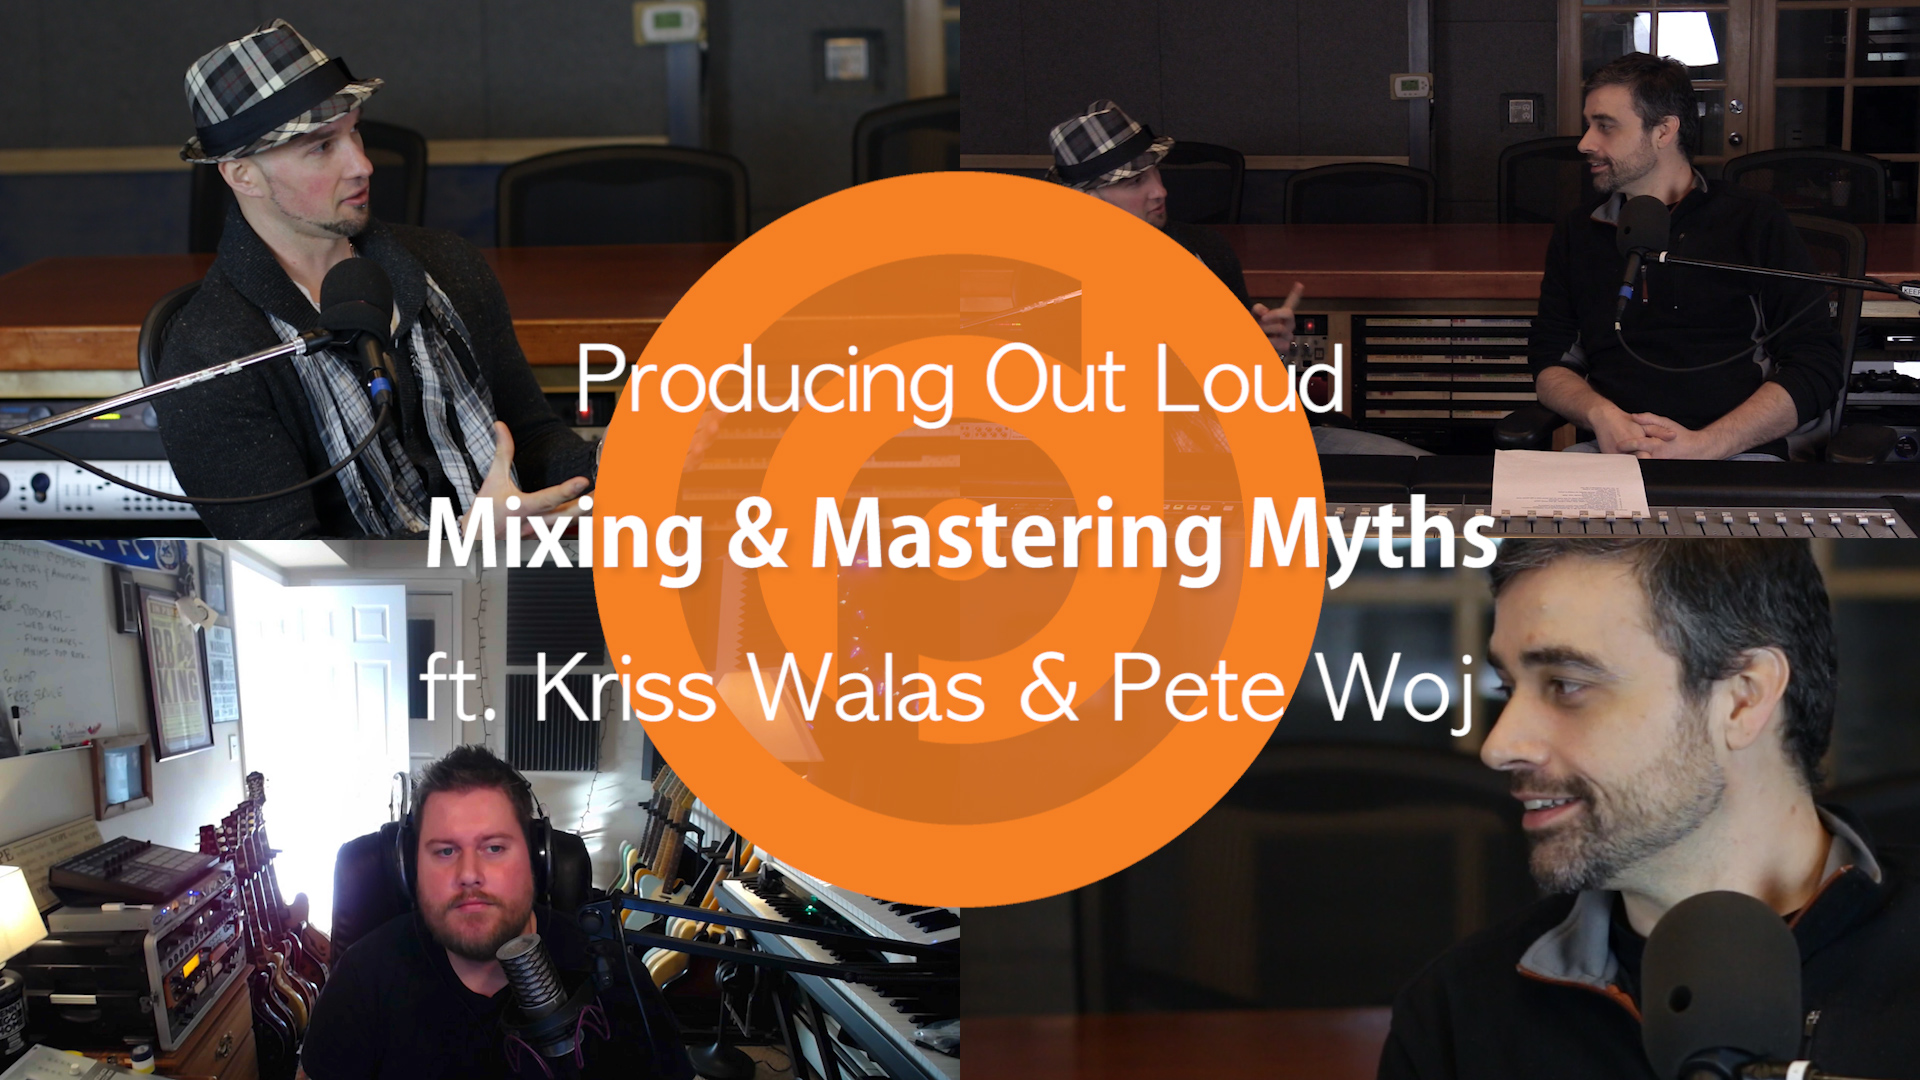 Mixing & Mastering Myths